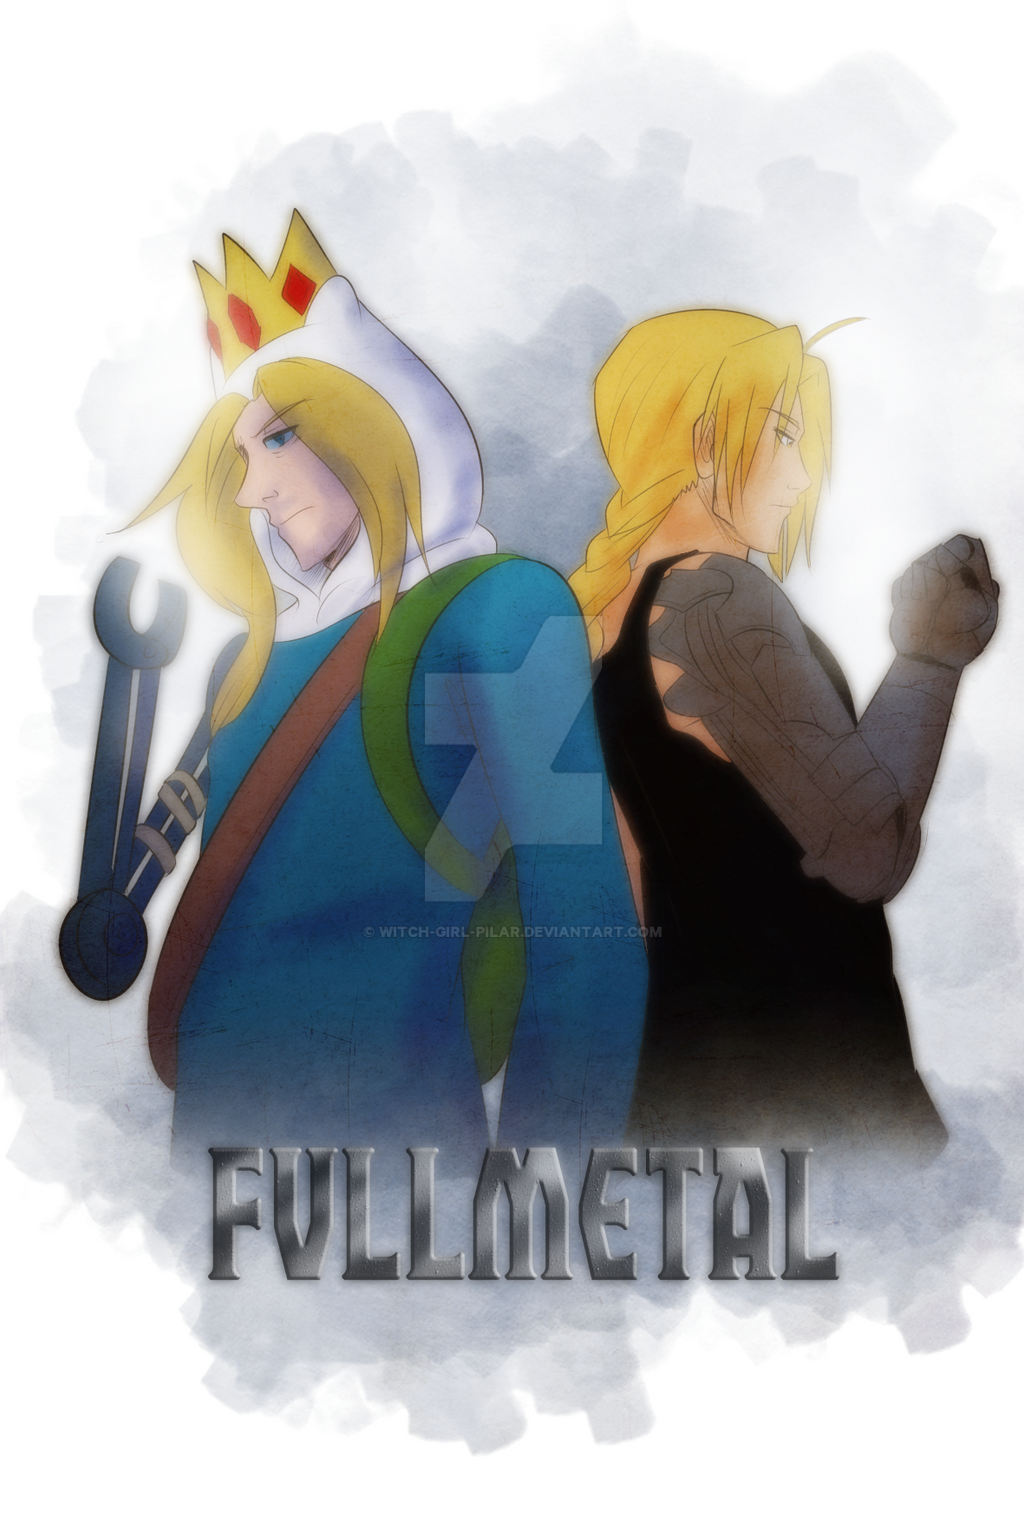 FMA X AT: Fullmetal by witch-girl-pilar